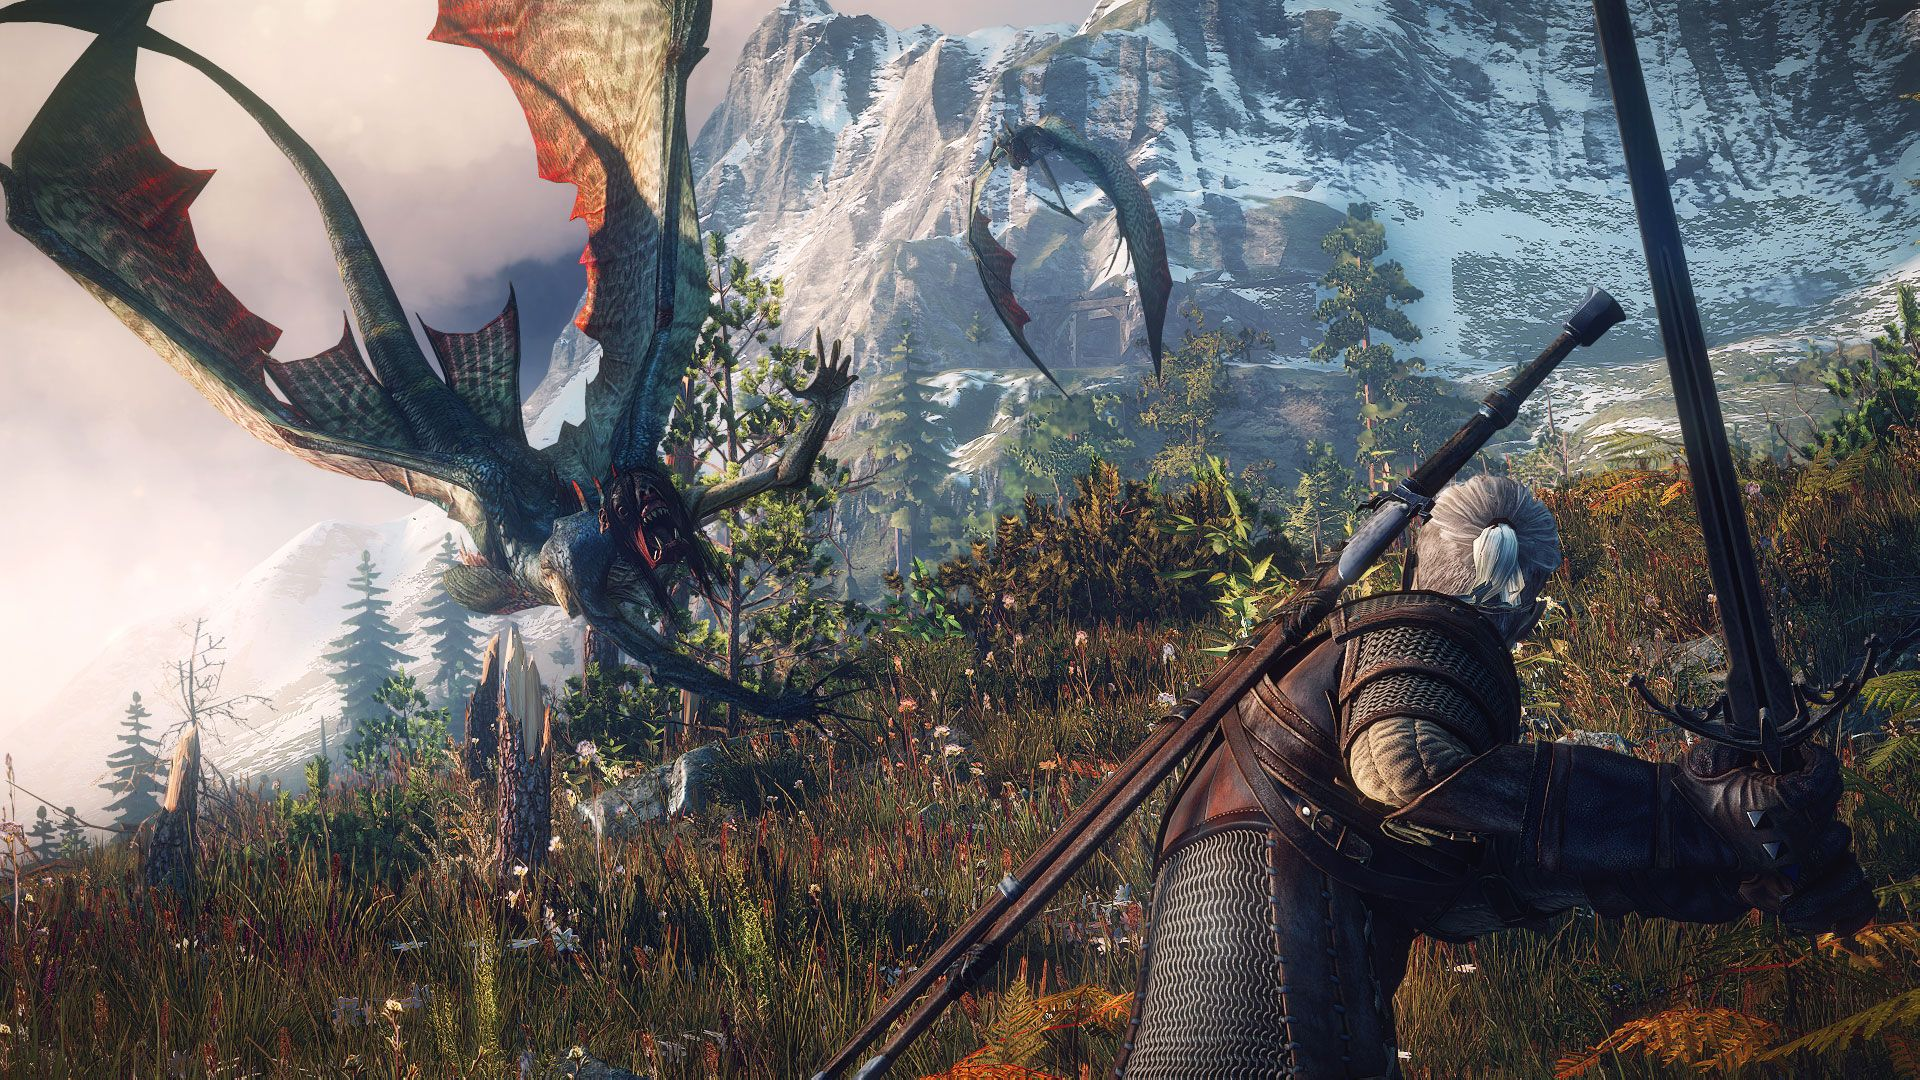 Witcher 3 Game Of The Year Edition Gets Incredible First Trailer The Witcher 3 Wild Hunt The sirens may look beautiful in the water but once they re out of it they change into deadly flying creatures..0